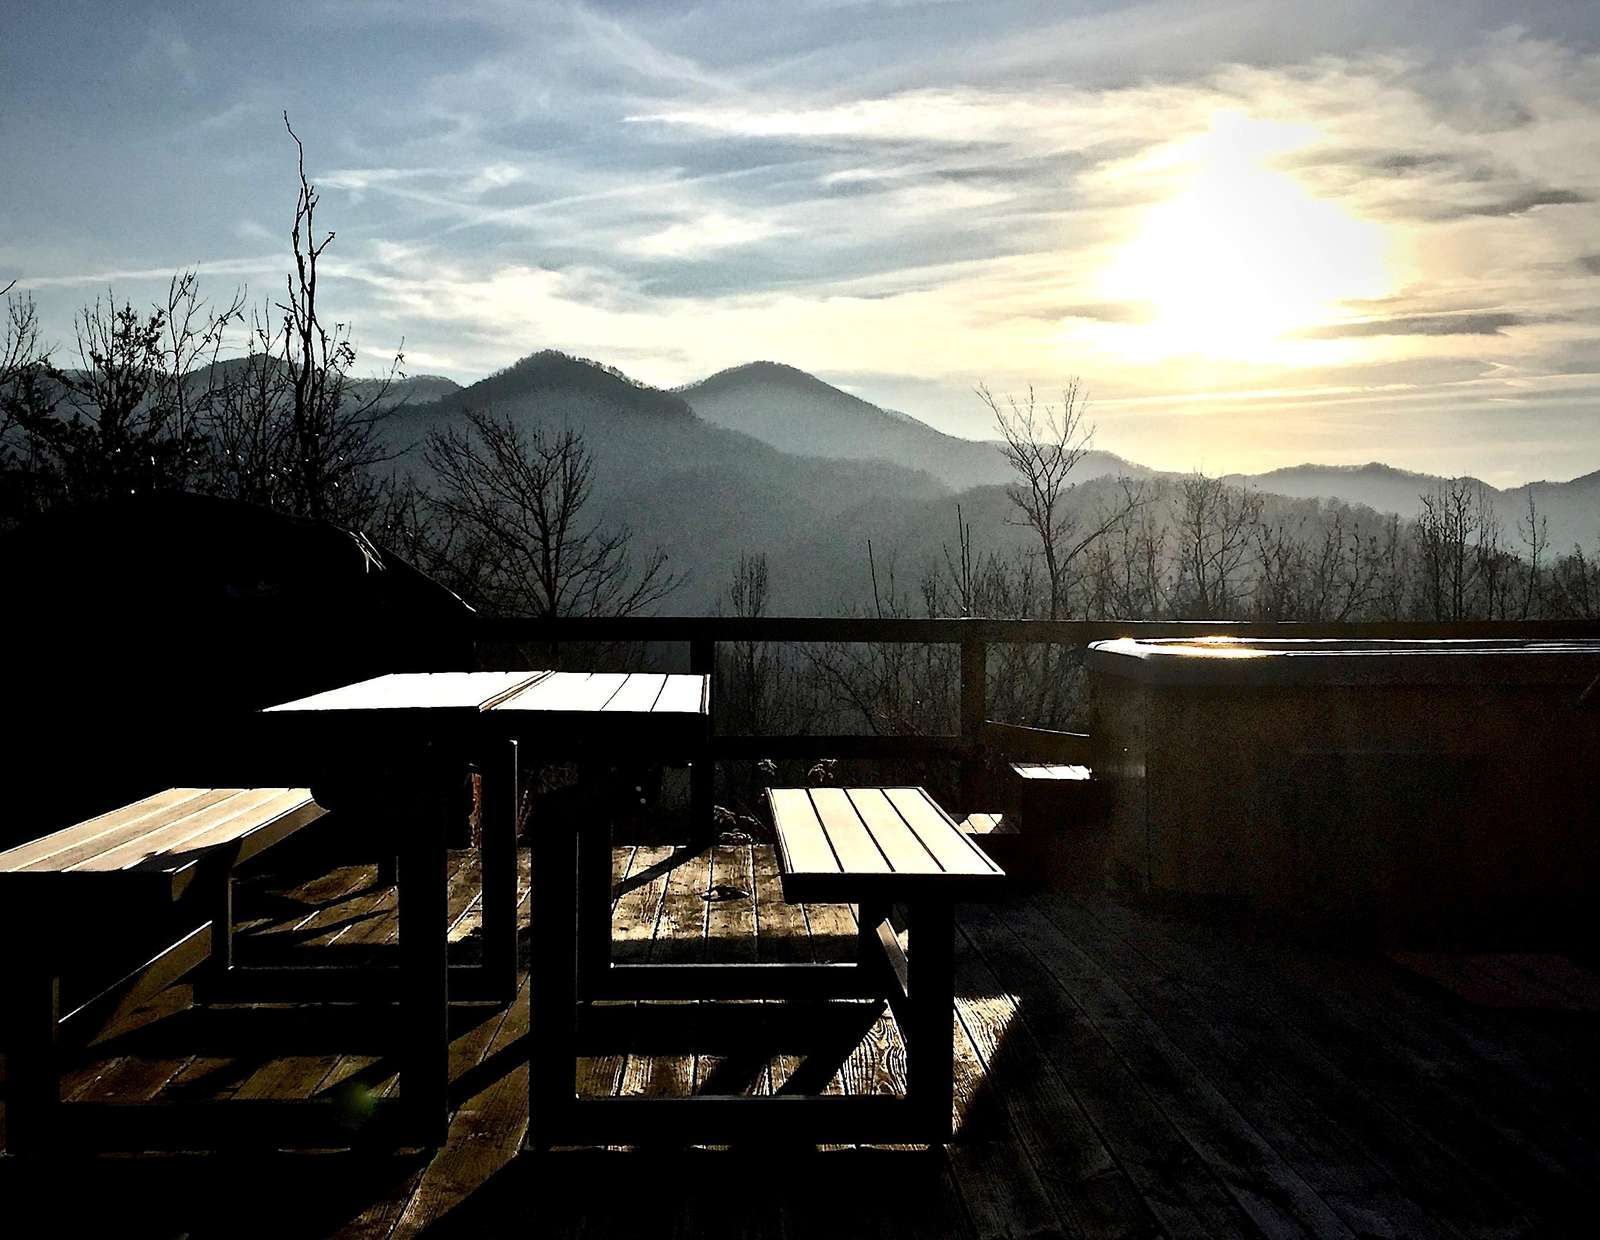 Near the Fire Pit, there is a PicNic Table (converts to Benches)